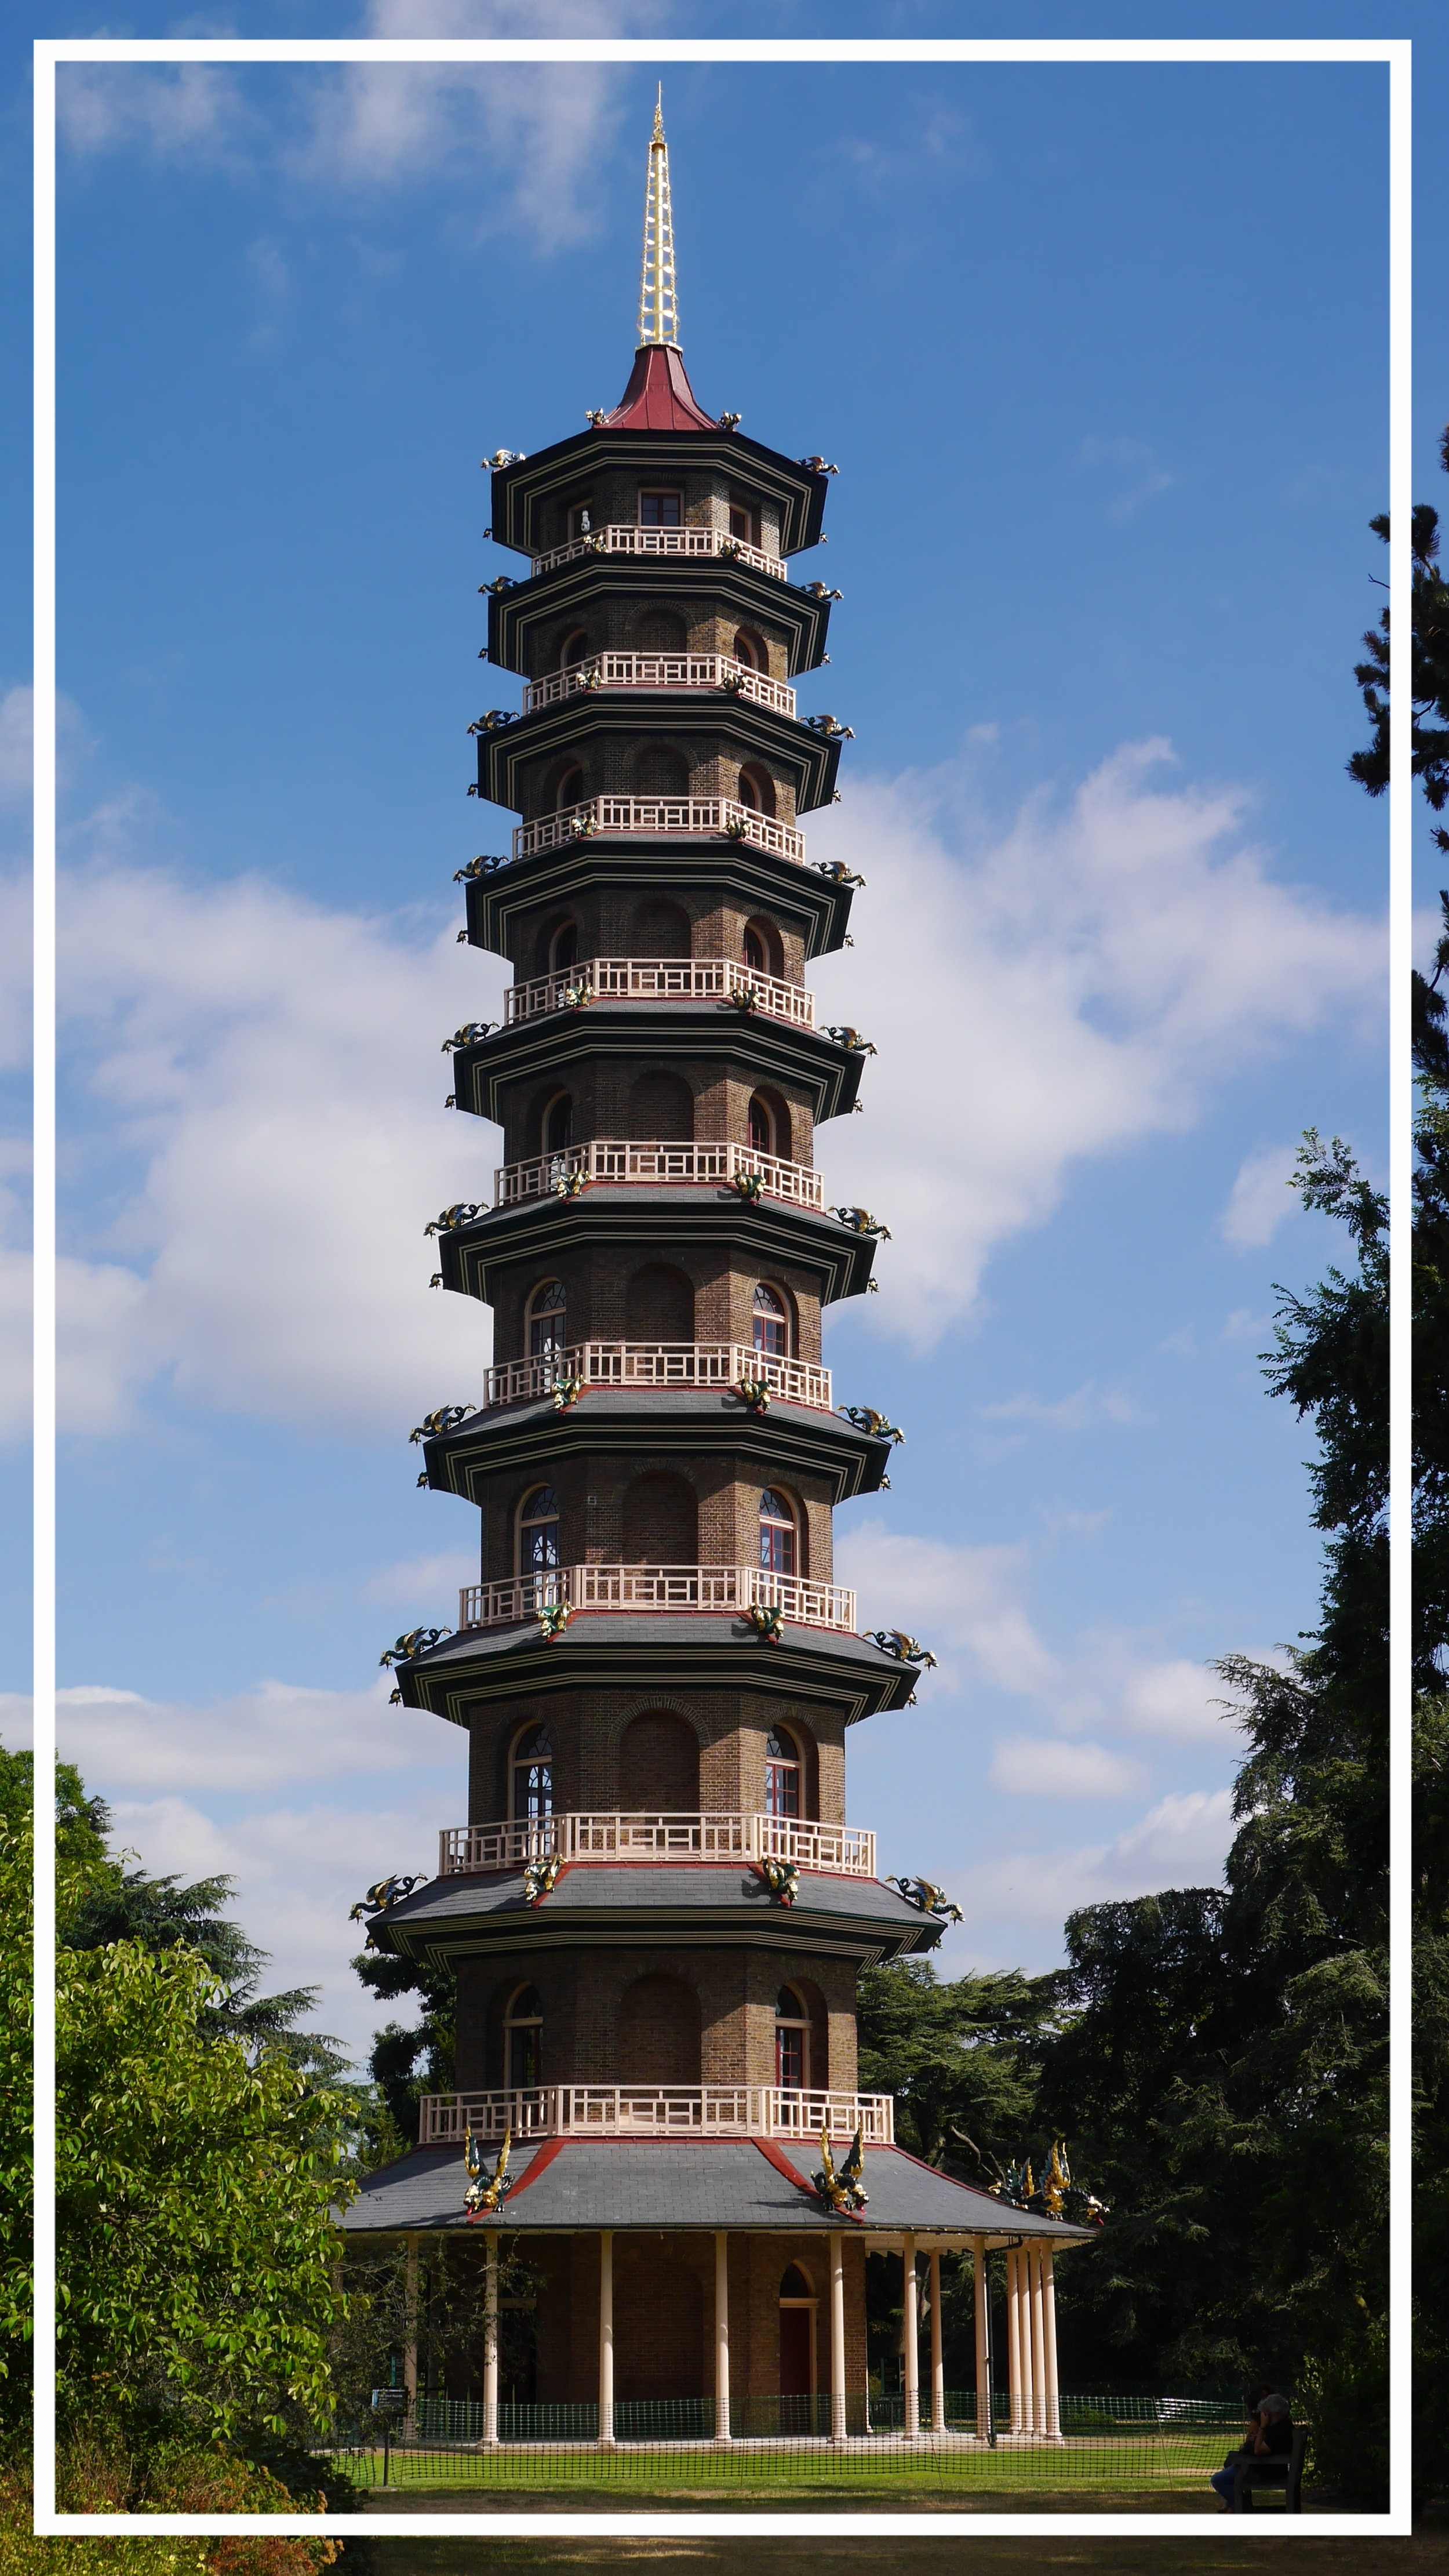 Dragon-adorned Pagoda, Kew Gardens, Richmond © HD Grzywnowicz, 2018